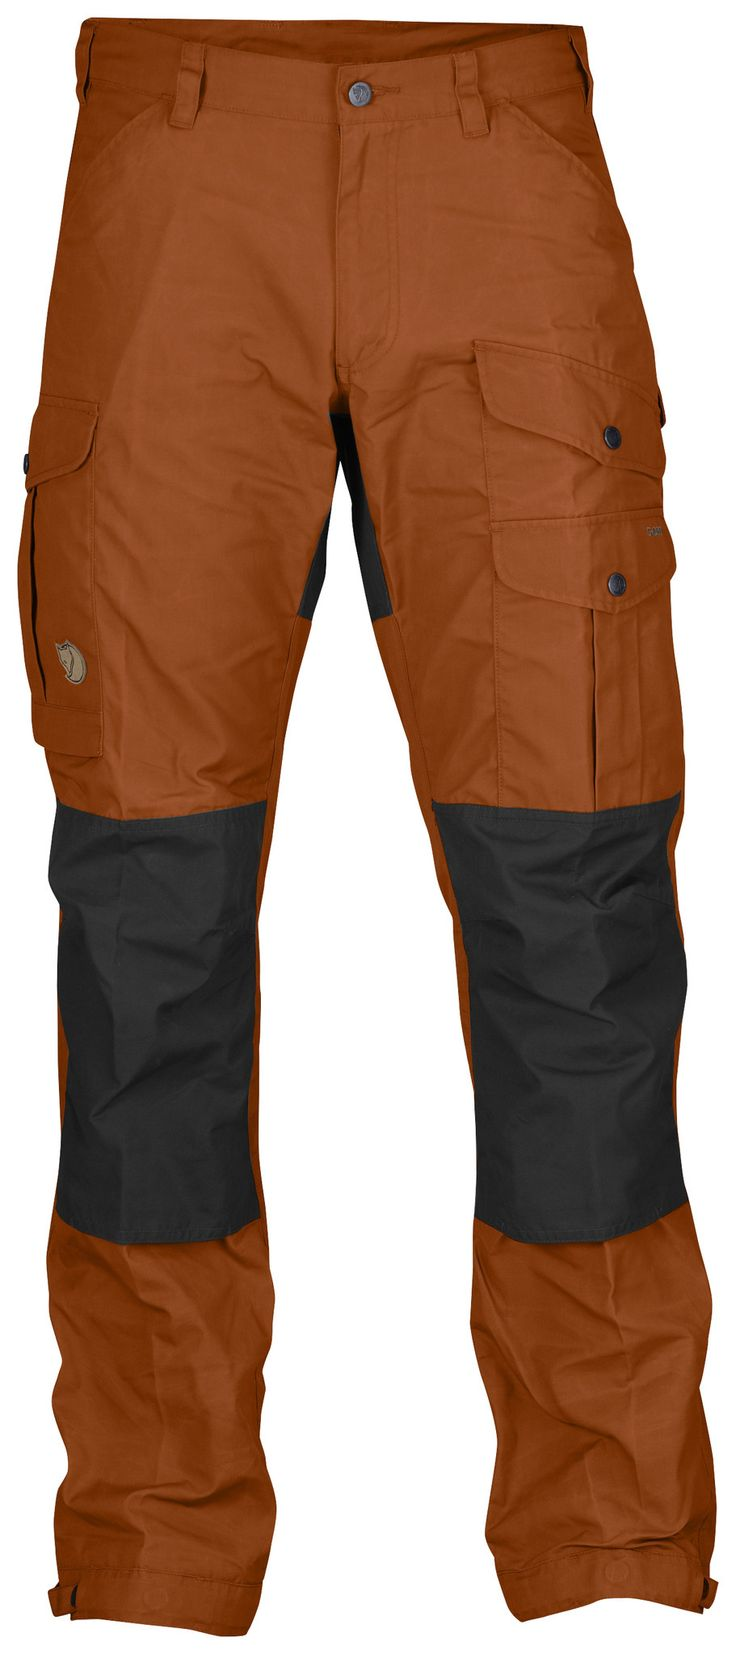 Hiking Pants Details Durable trekking trousers good for adventuring in mountains and forests. Description Cargo pants made from durable, wind and water resistant G-1000® with reinforcements and double